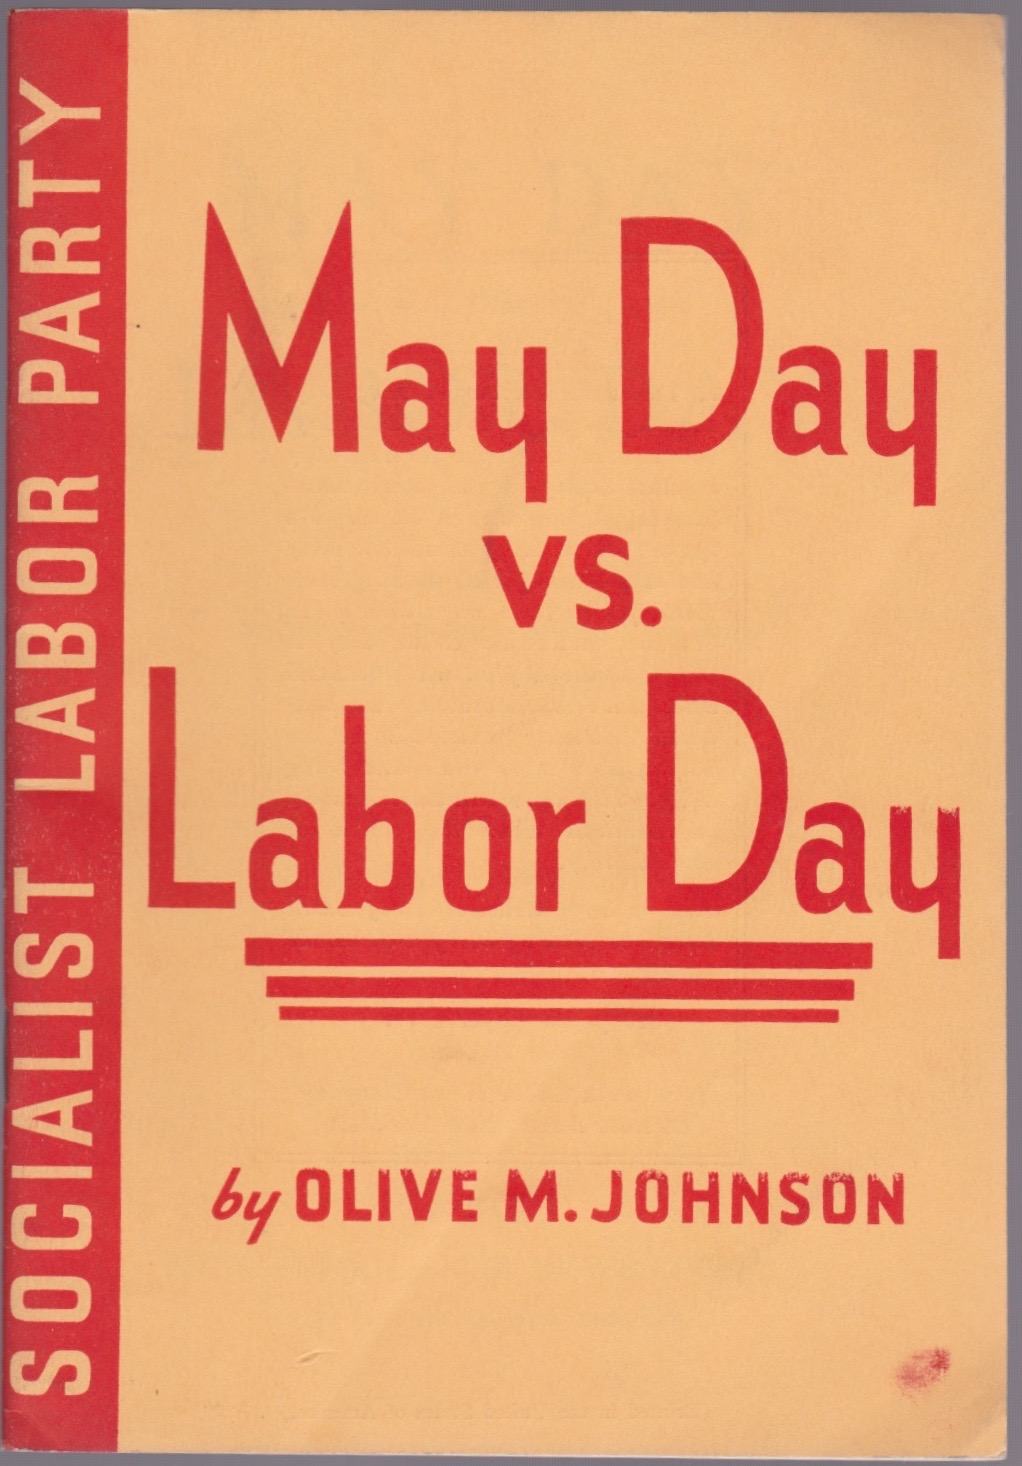 May Day Vs Labor Day A Comparison Of The Social Significance Of The Two Days Of Labor Celebration By Olive M Johnson On Le Bookiniste